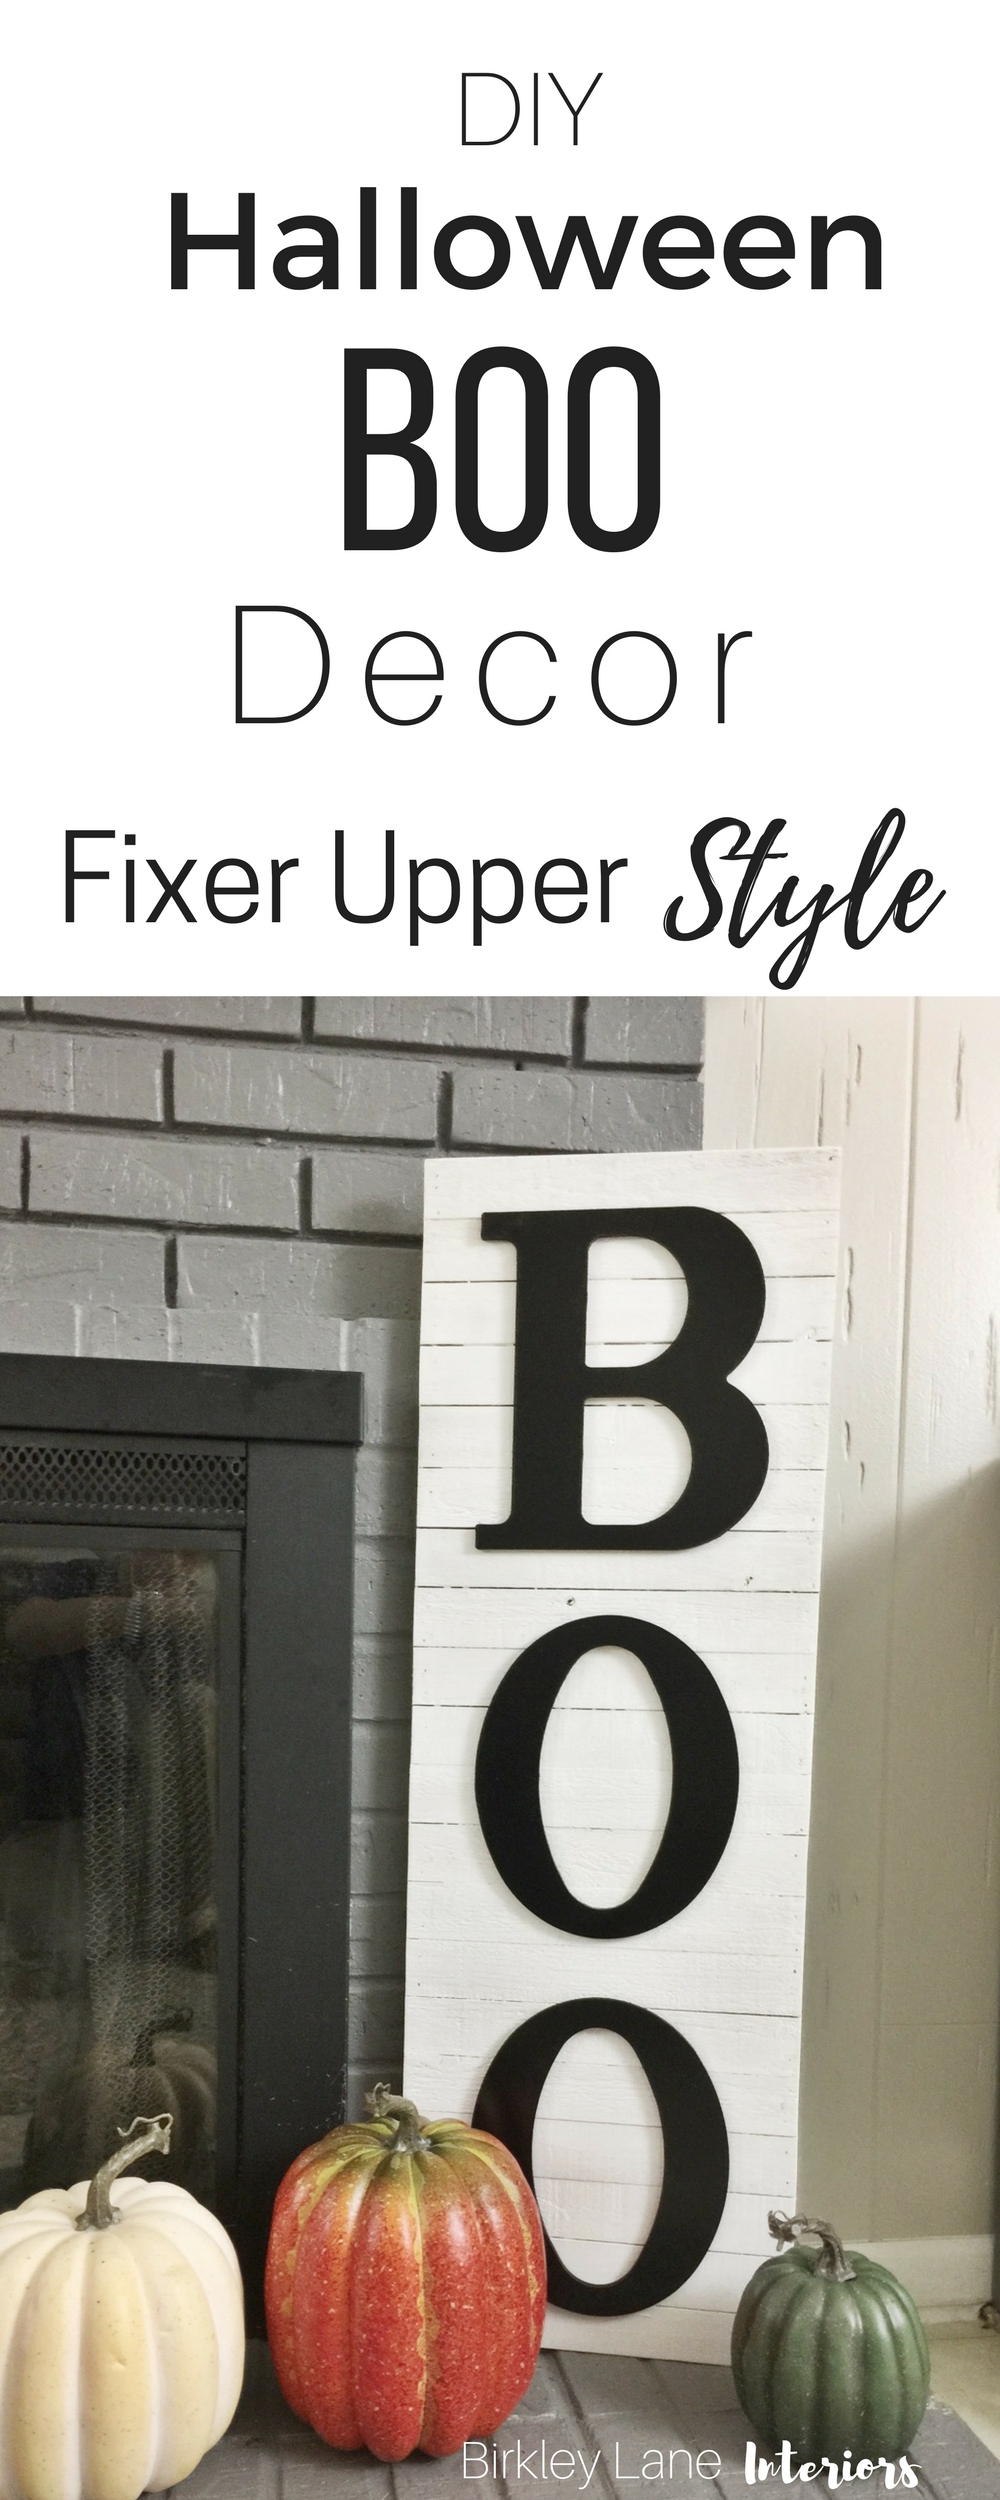 Looking for some elegant Halloween home decor? Get the farmhouse look with this DIY Halloween BOO decor and instantly update your style!